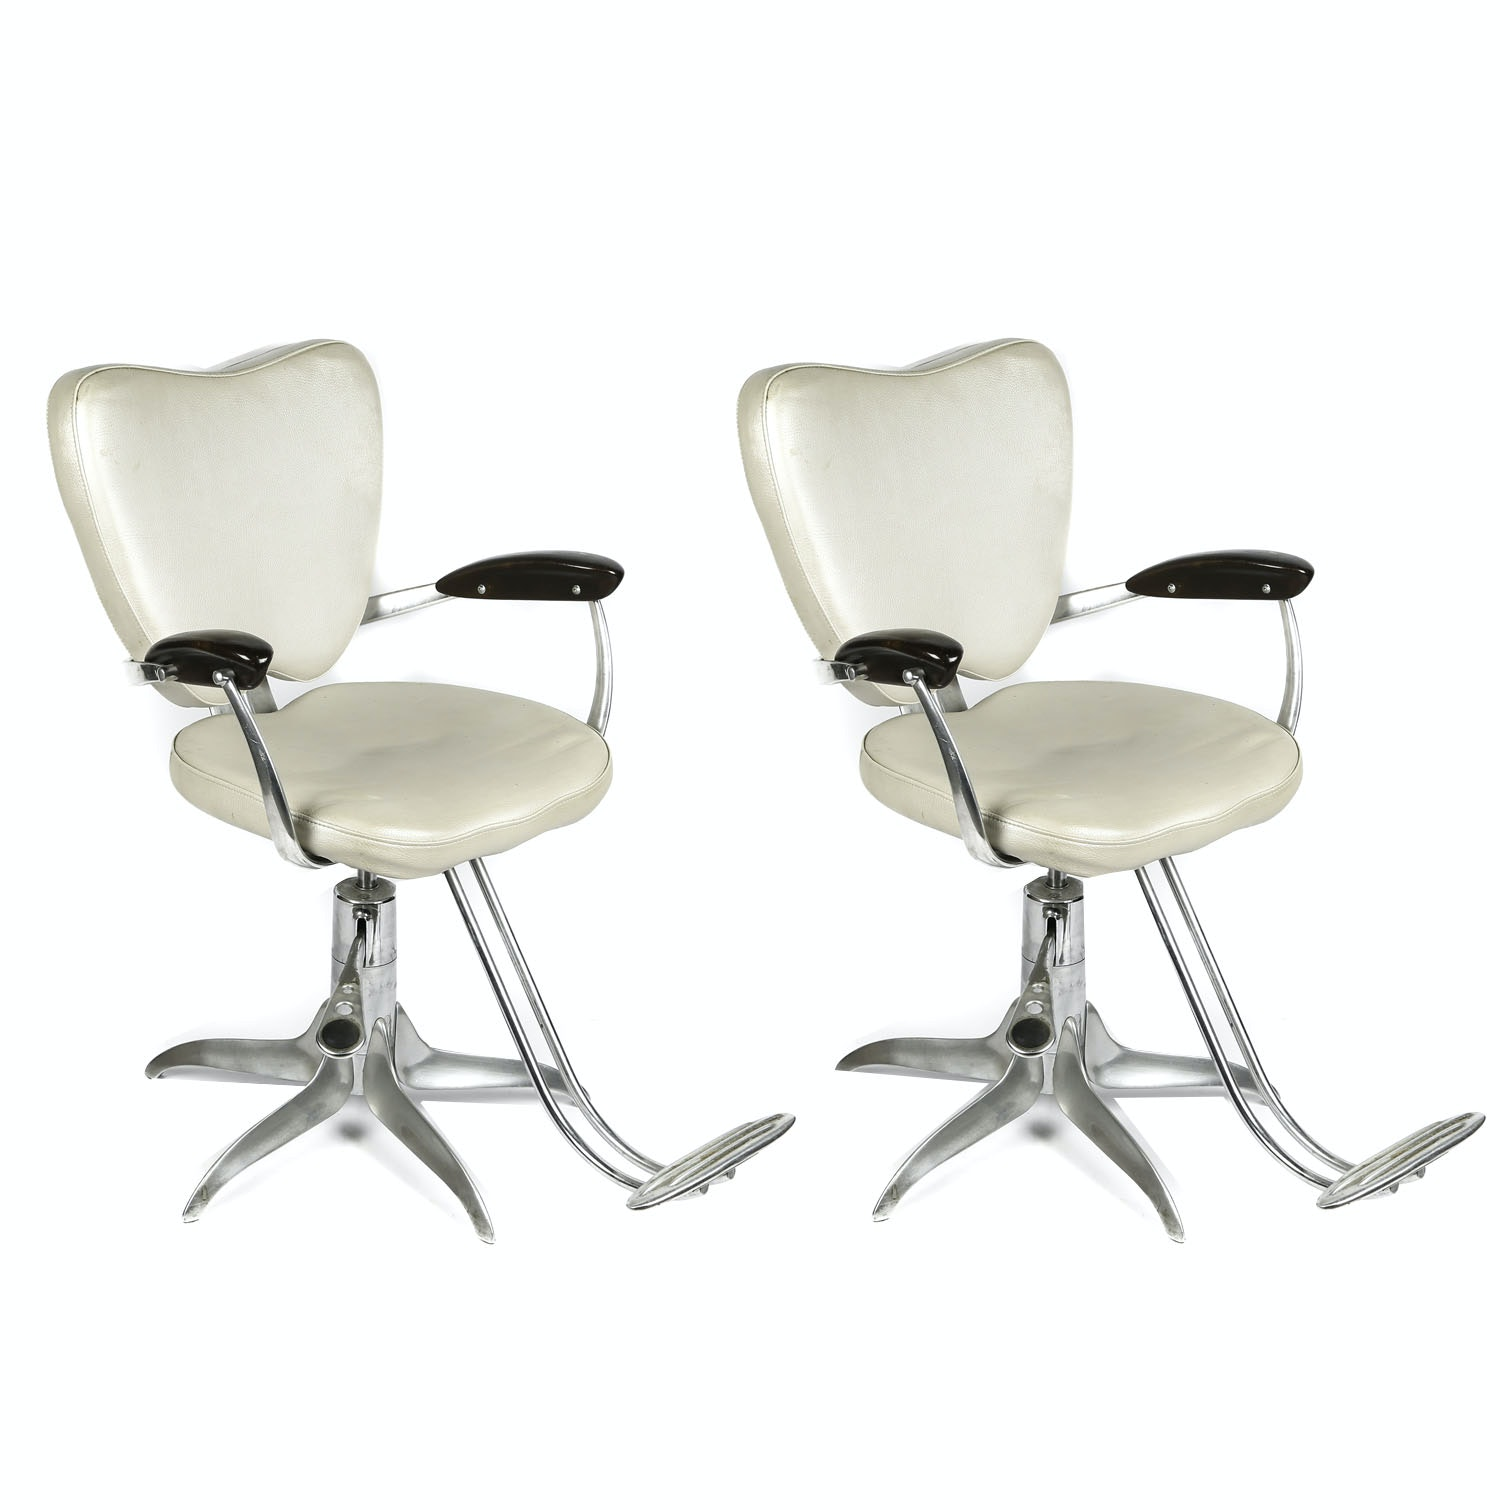 "Gamma & Bross Italian ""Man Ray"" Styling Chairs"